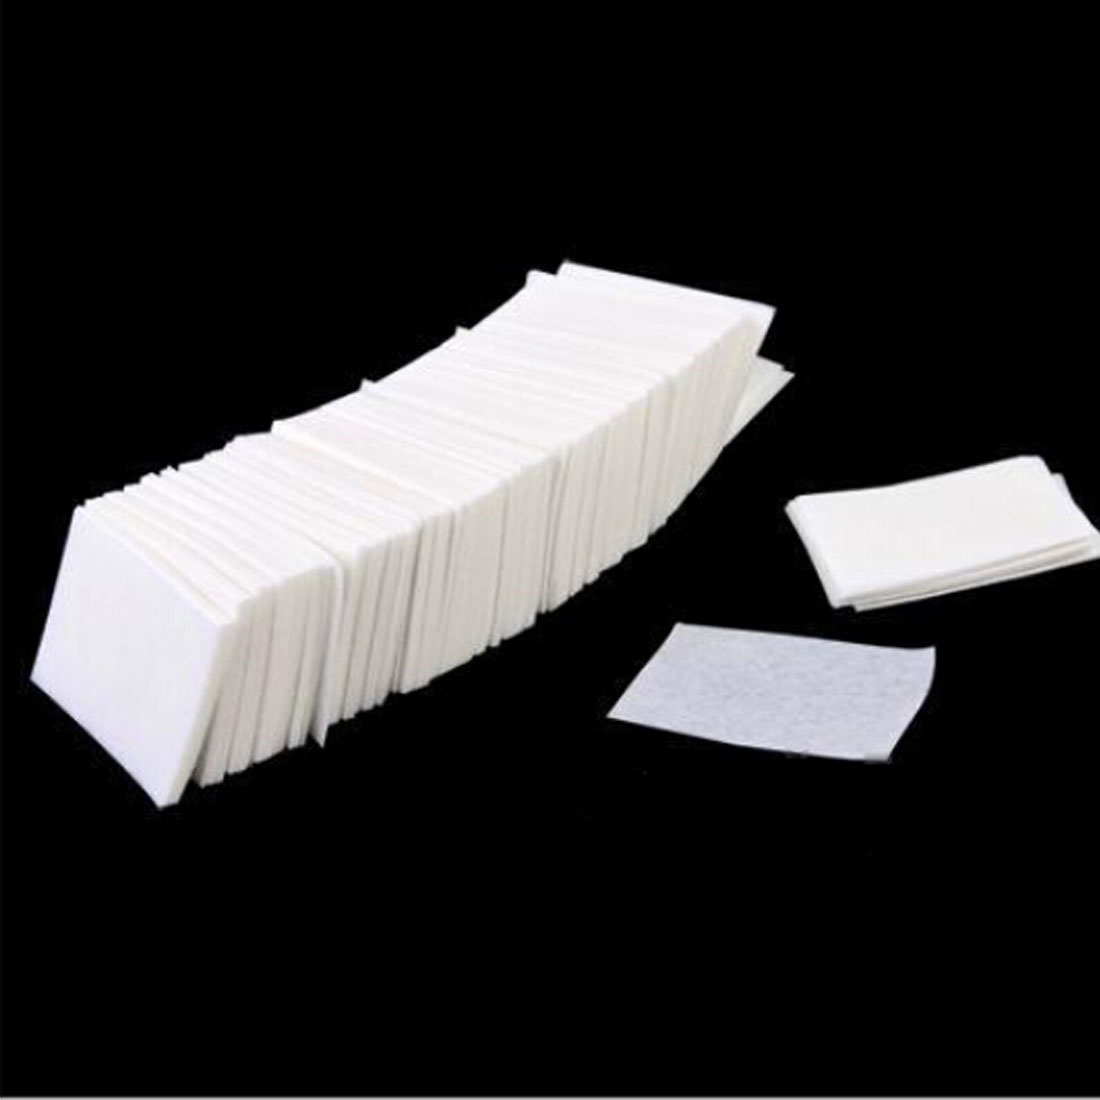 Hot Popular 400pcs/set Nail Art wipe Manicure Polish gel nail Wipes Cotton Lint Pads Paper Acrylic Gel Tips Fast Delivery - Run Beauty house store